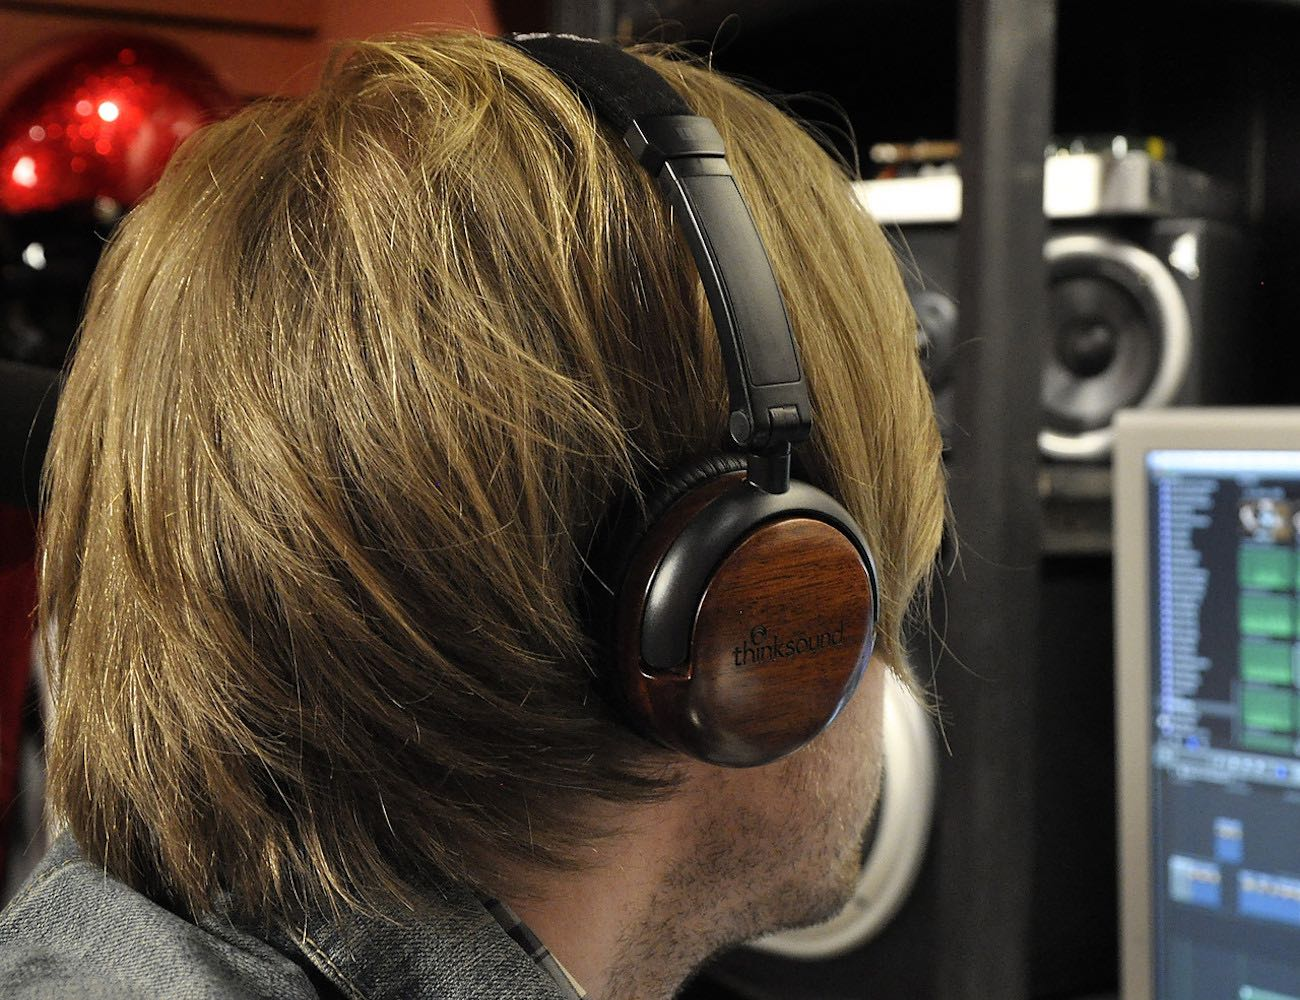 on1-by-thinksound-supra-aural-on-ear-monitor-wooden-headphone-02